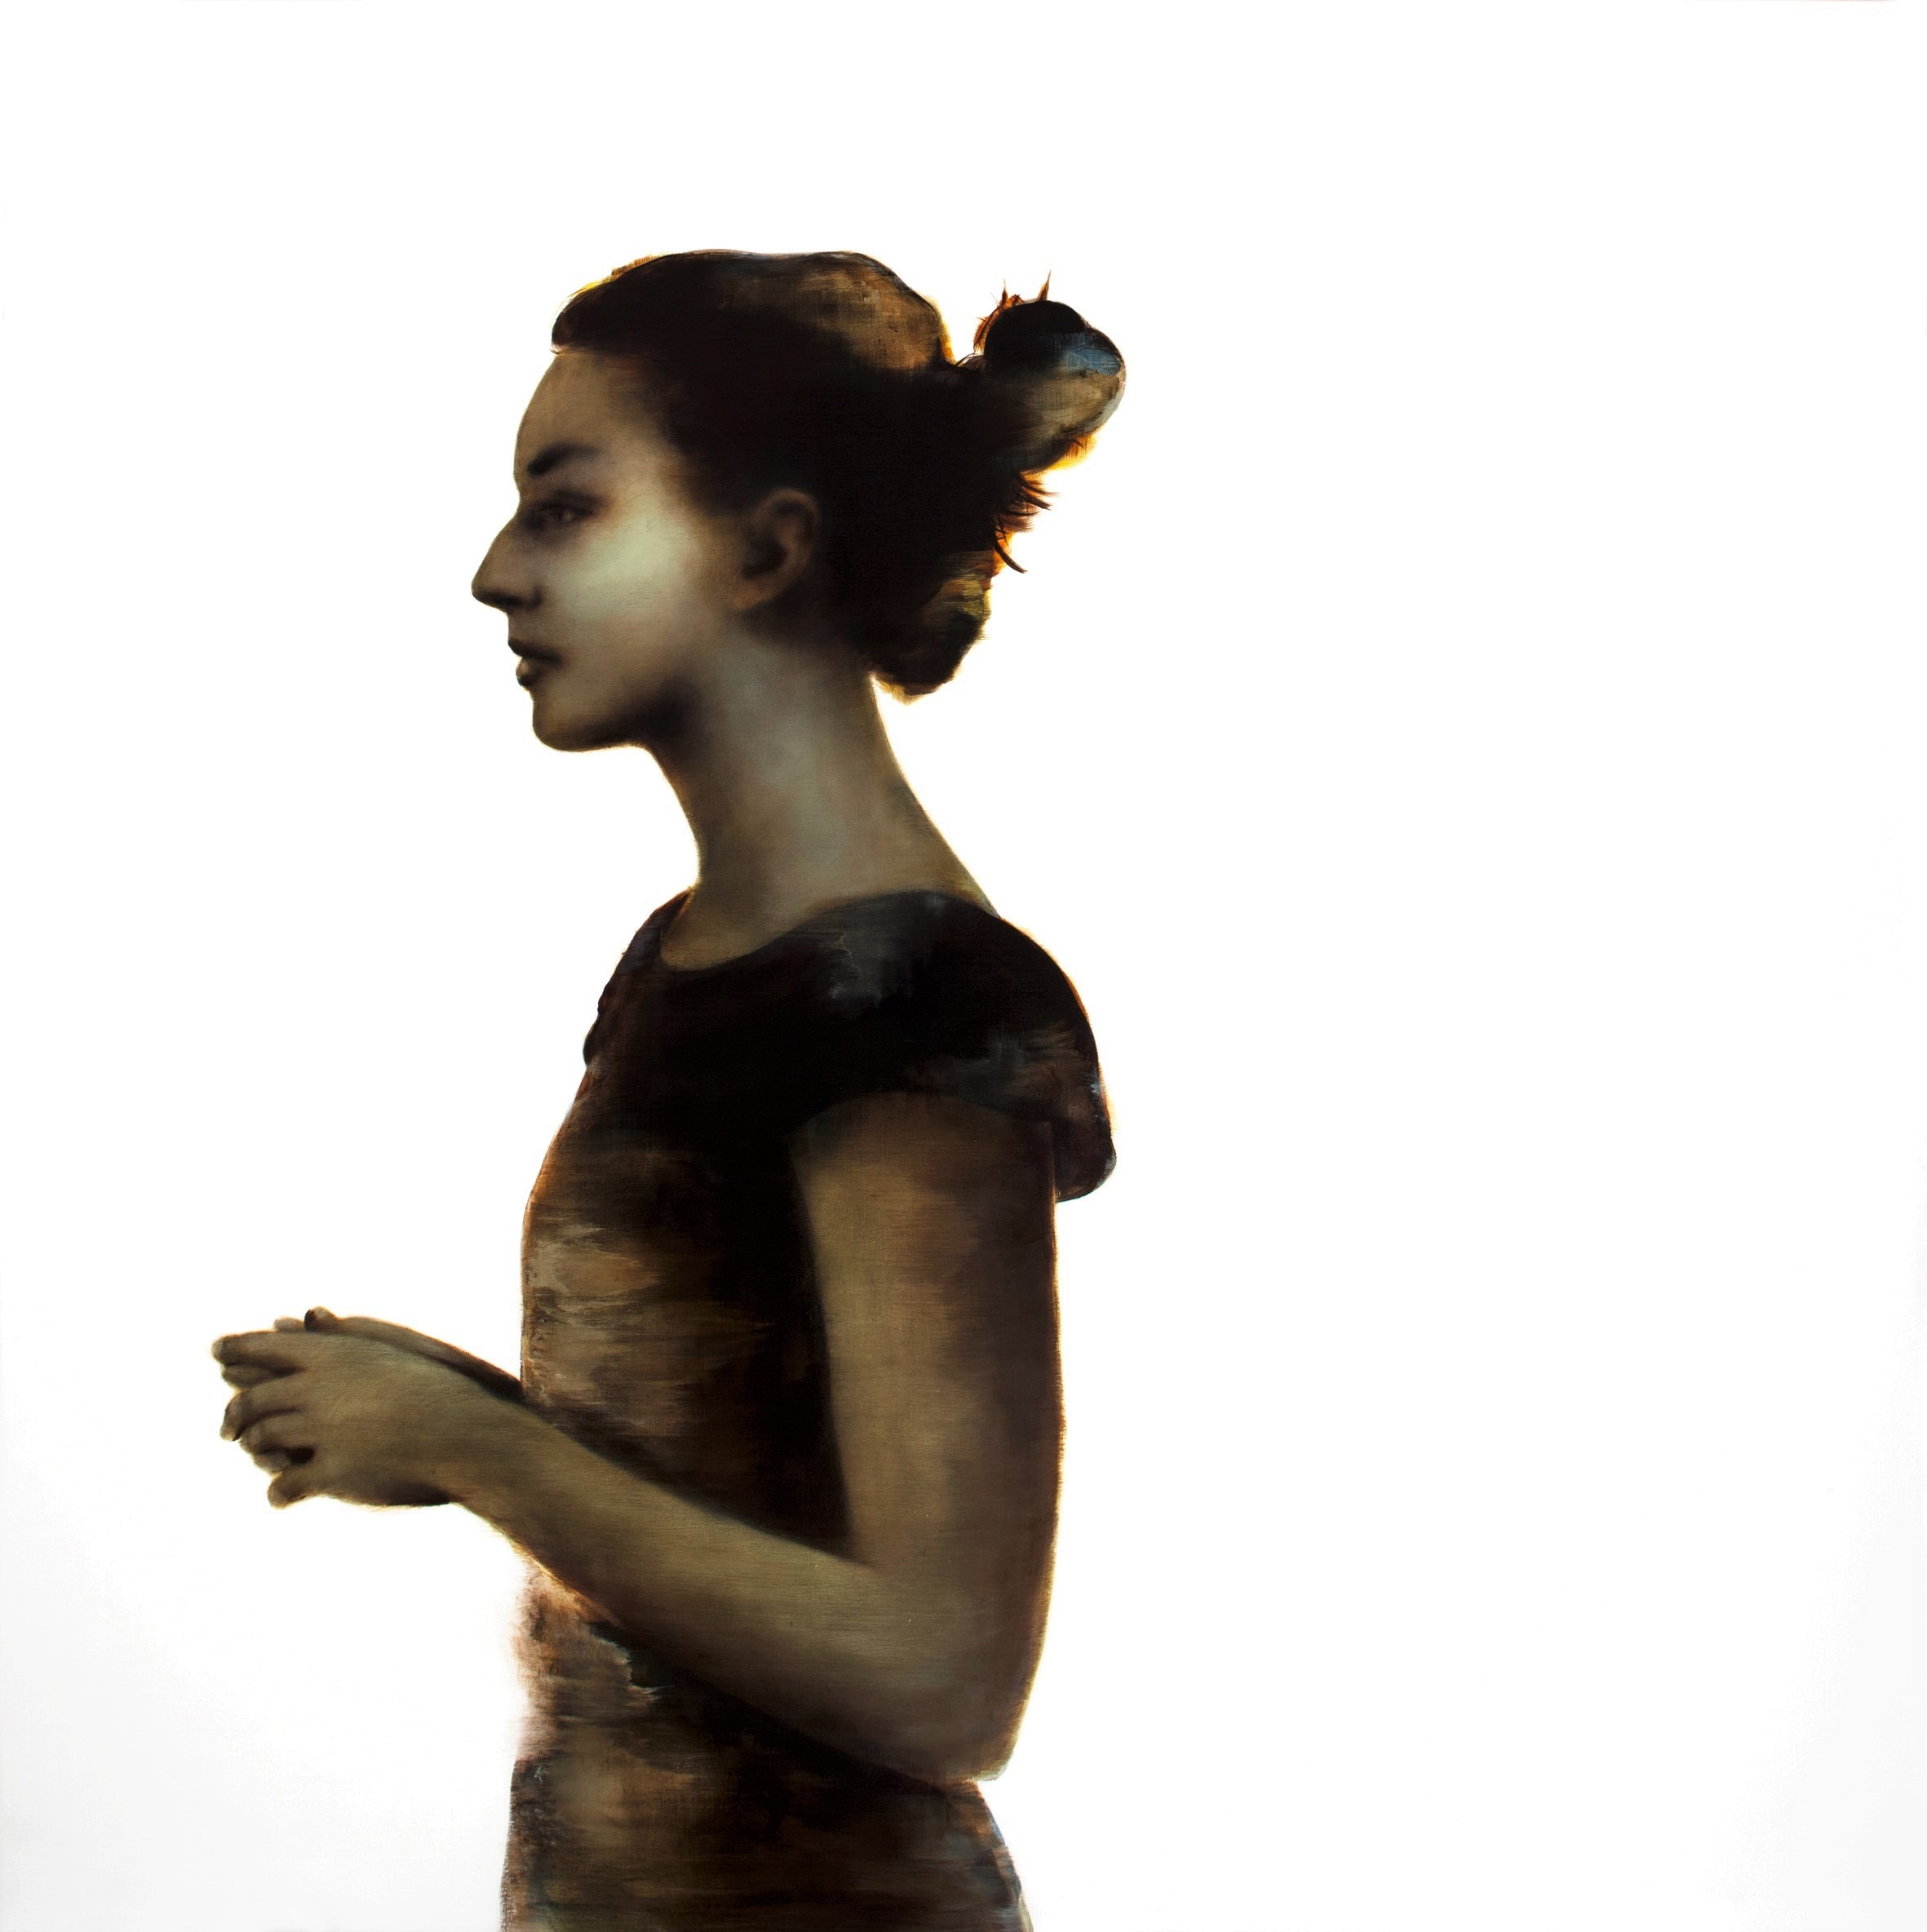 Rachel Coad, Megan II, oil on linen, 165x165cm